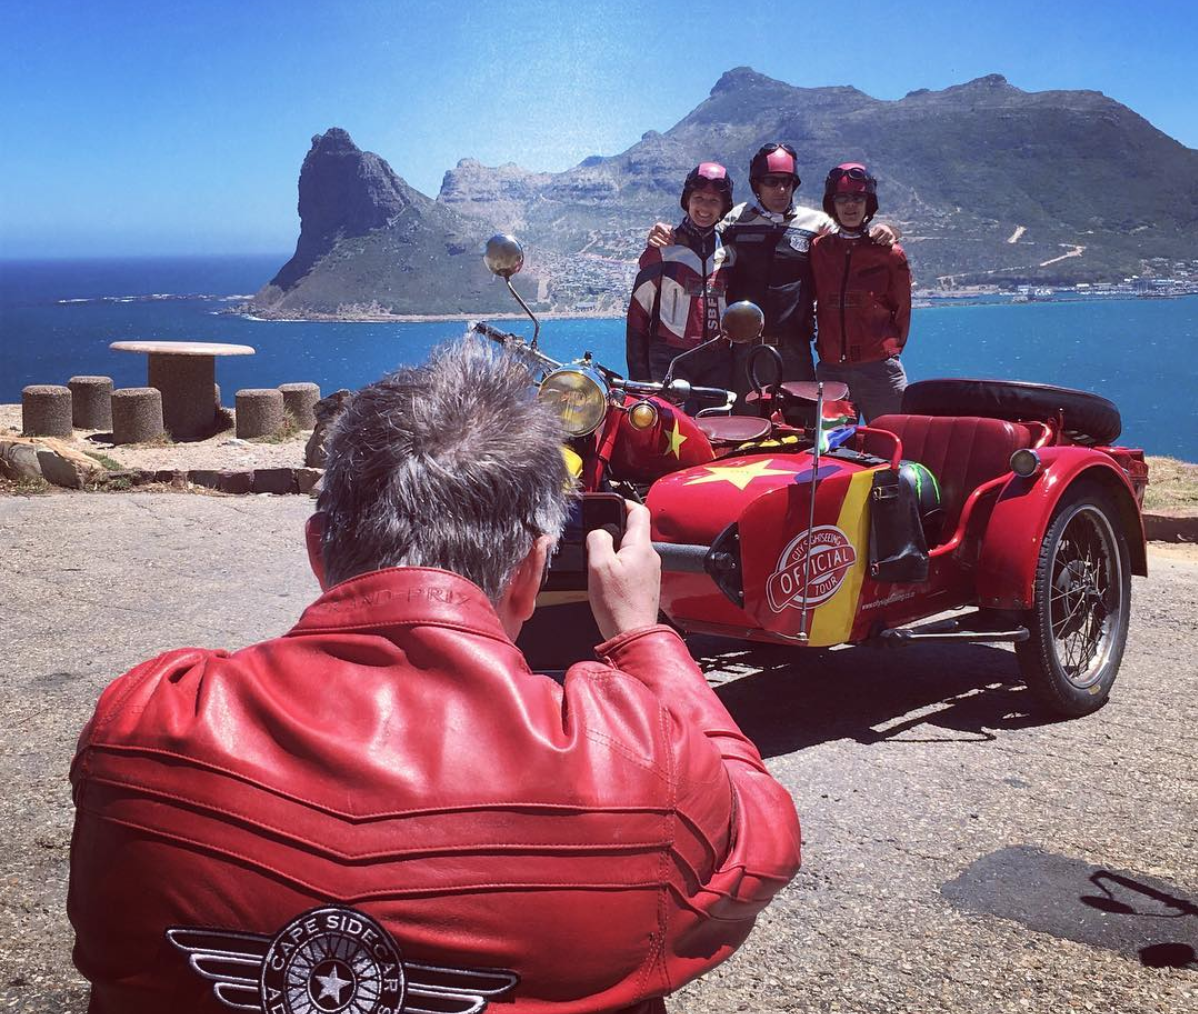 Full Day Motorbike Sidecar Tour in Cape Town-5